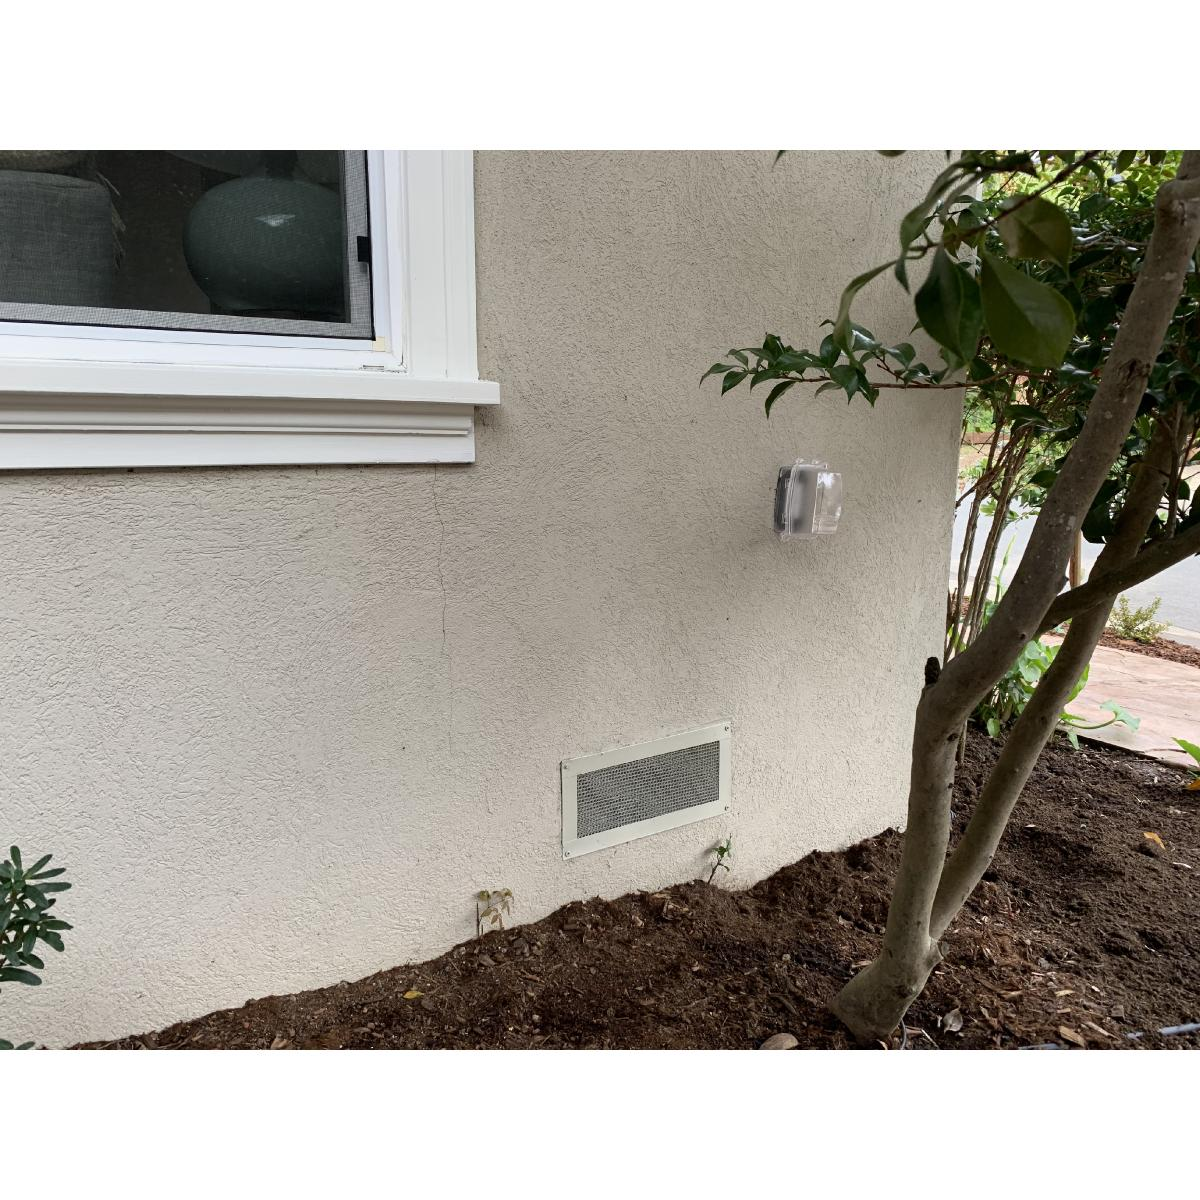 8-Inch H x 14-Inch W (62 Sq  In  Venting Area) Vulcan Fire Stopping  Foundation/Soffit Vent 3/4-Inch Recessed Flange for Stucco, Galvanized Steel